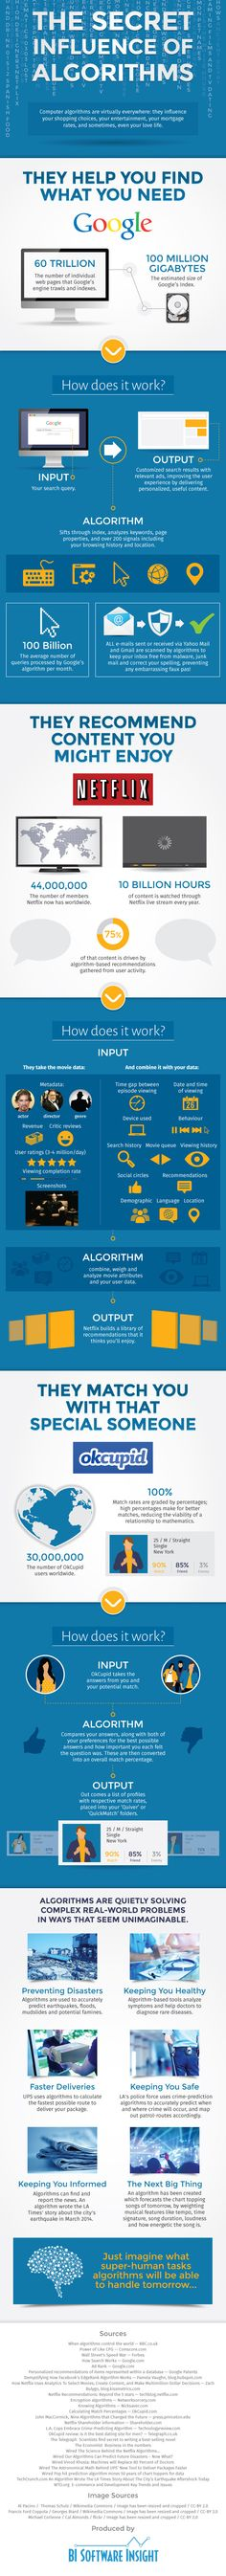 The Secret Influence of Algorithms [infographic]